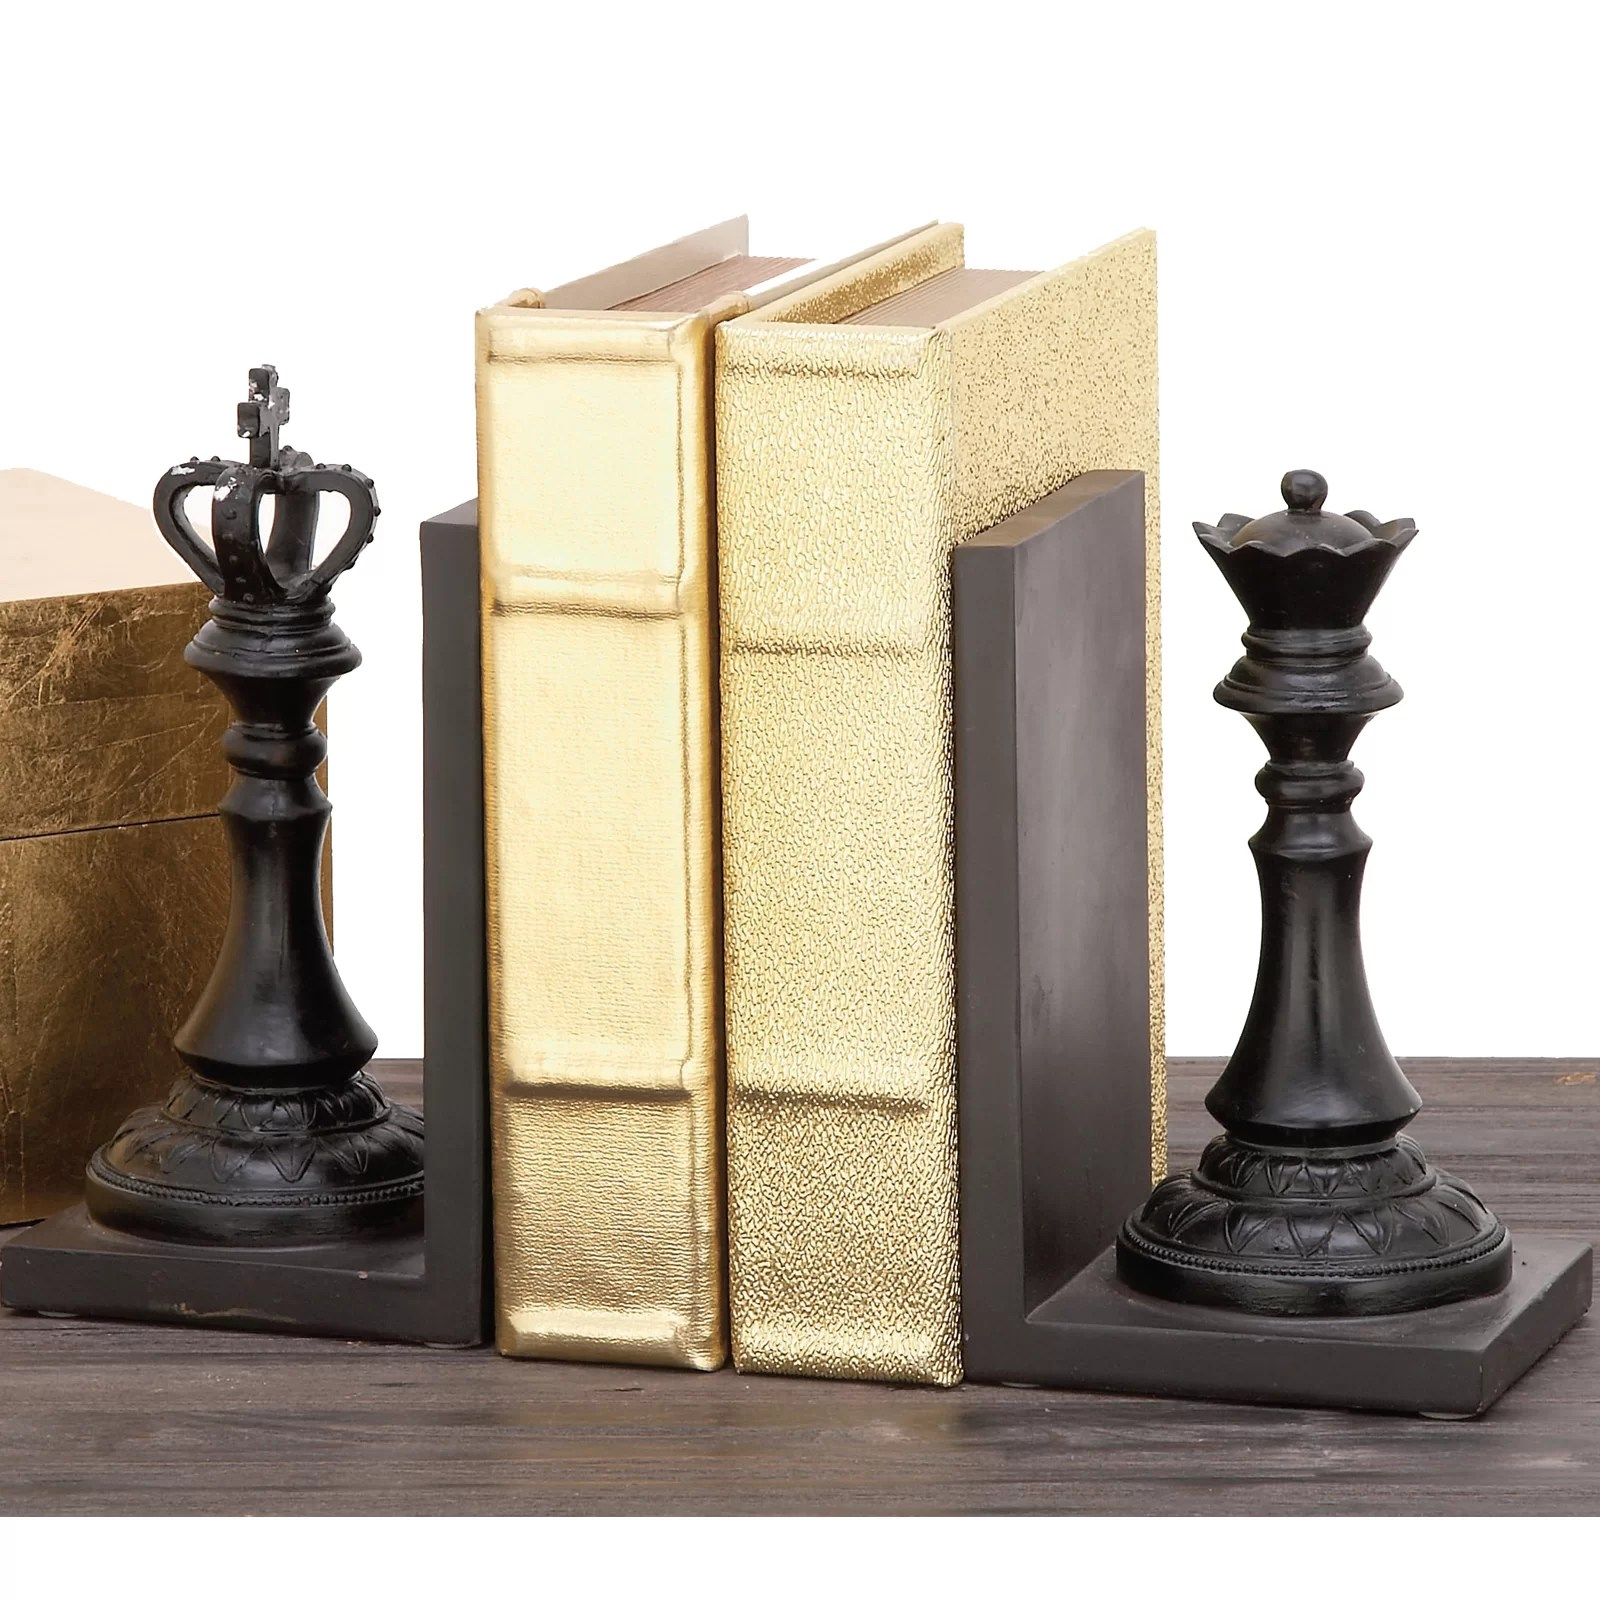 Chess Decor Urban Designs Decorative Chess King And Queen Book Ends